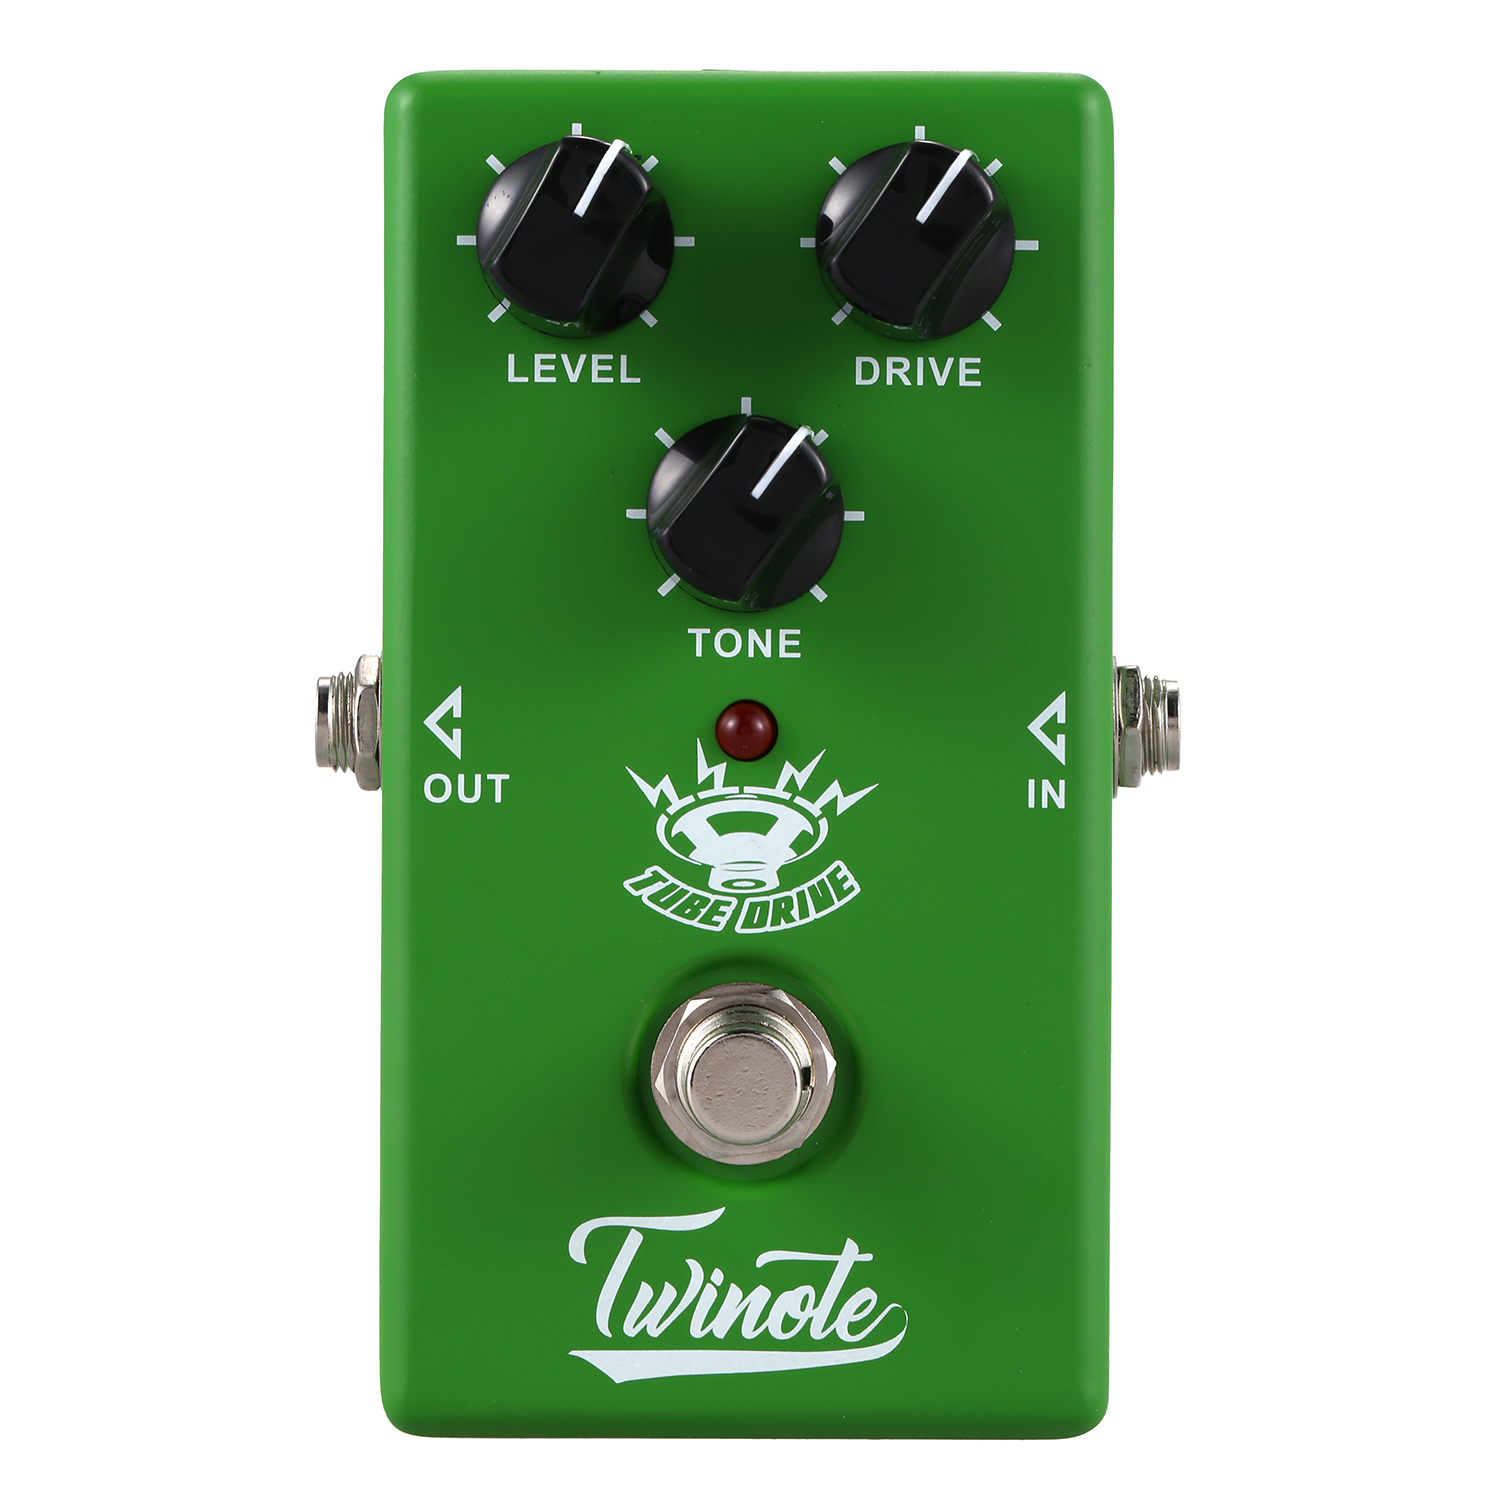 twinote tube drive guitar effect pedal overdrive effects pedal sound guitar pedal in guitar. Black Bedroom Furniture Sets. Home Design Ideas